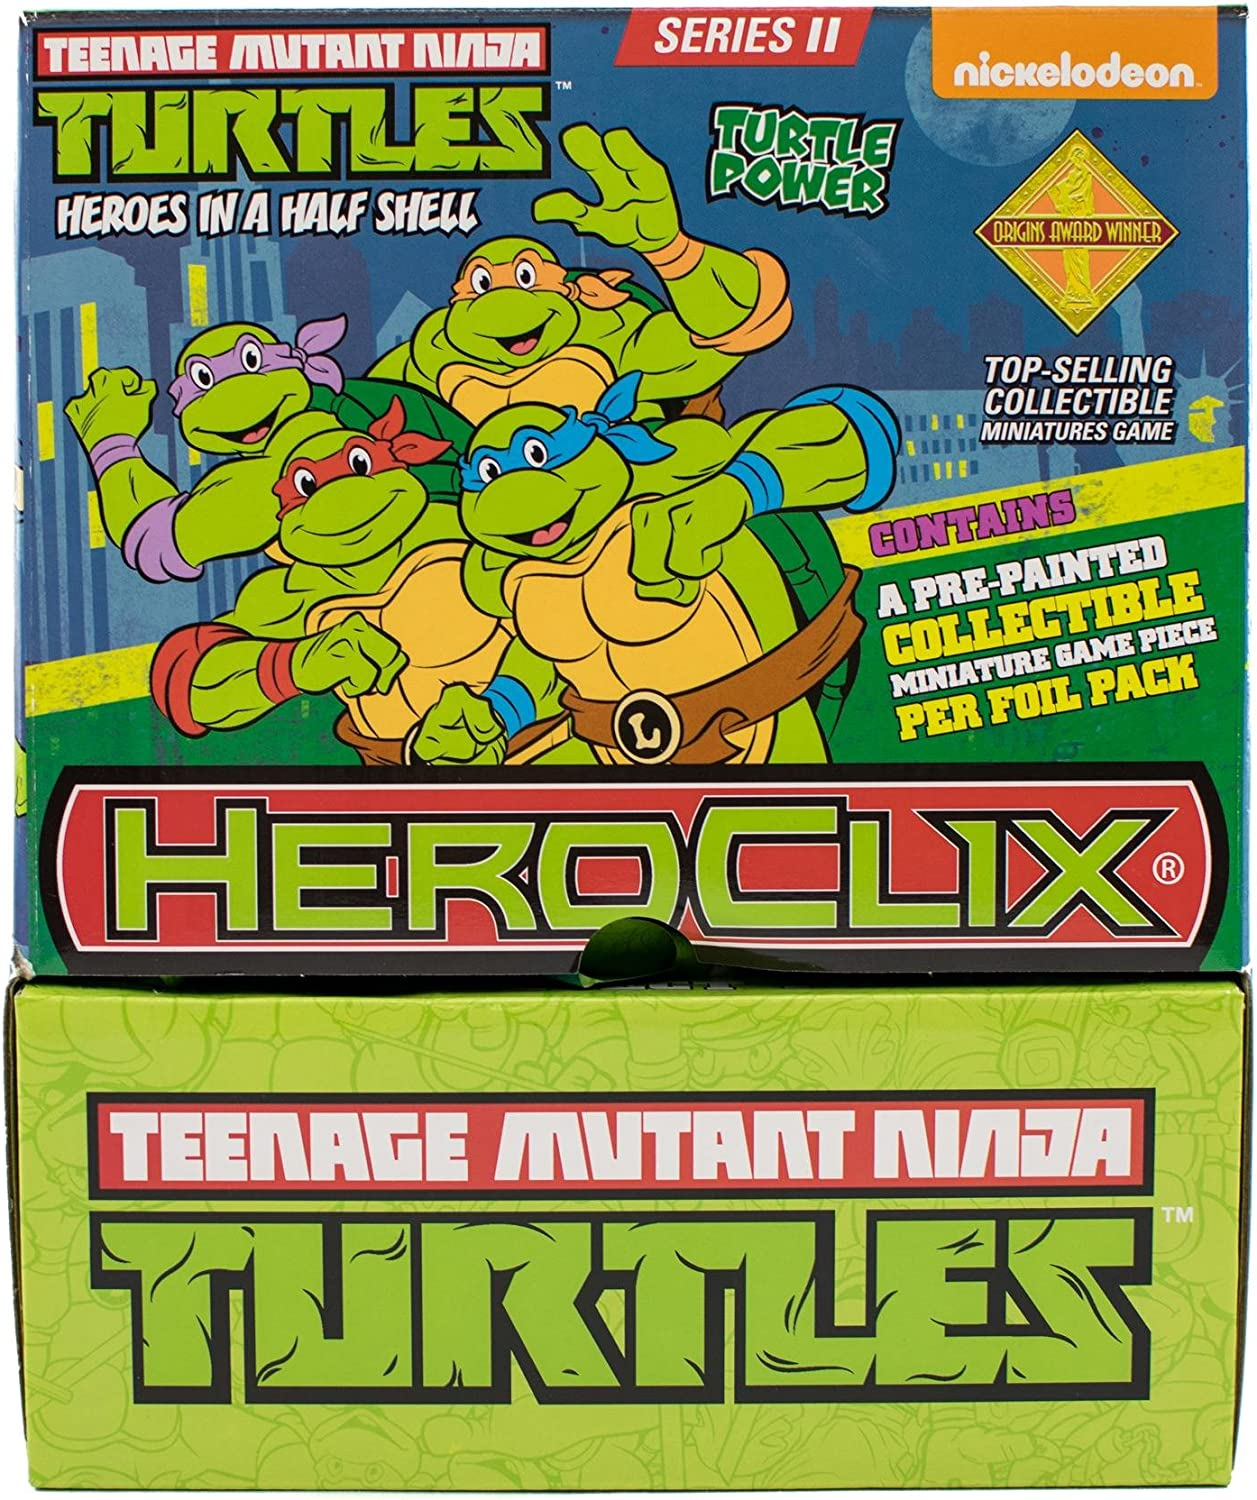 Amazon.com: Teenage Mutant Ninja Turtles Heroclix: Gravity ...